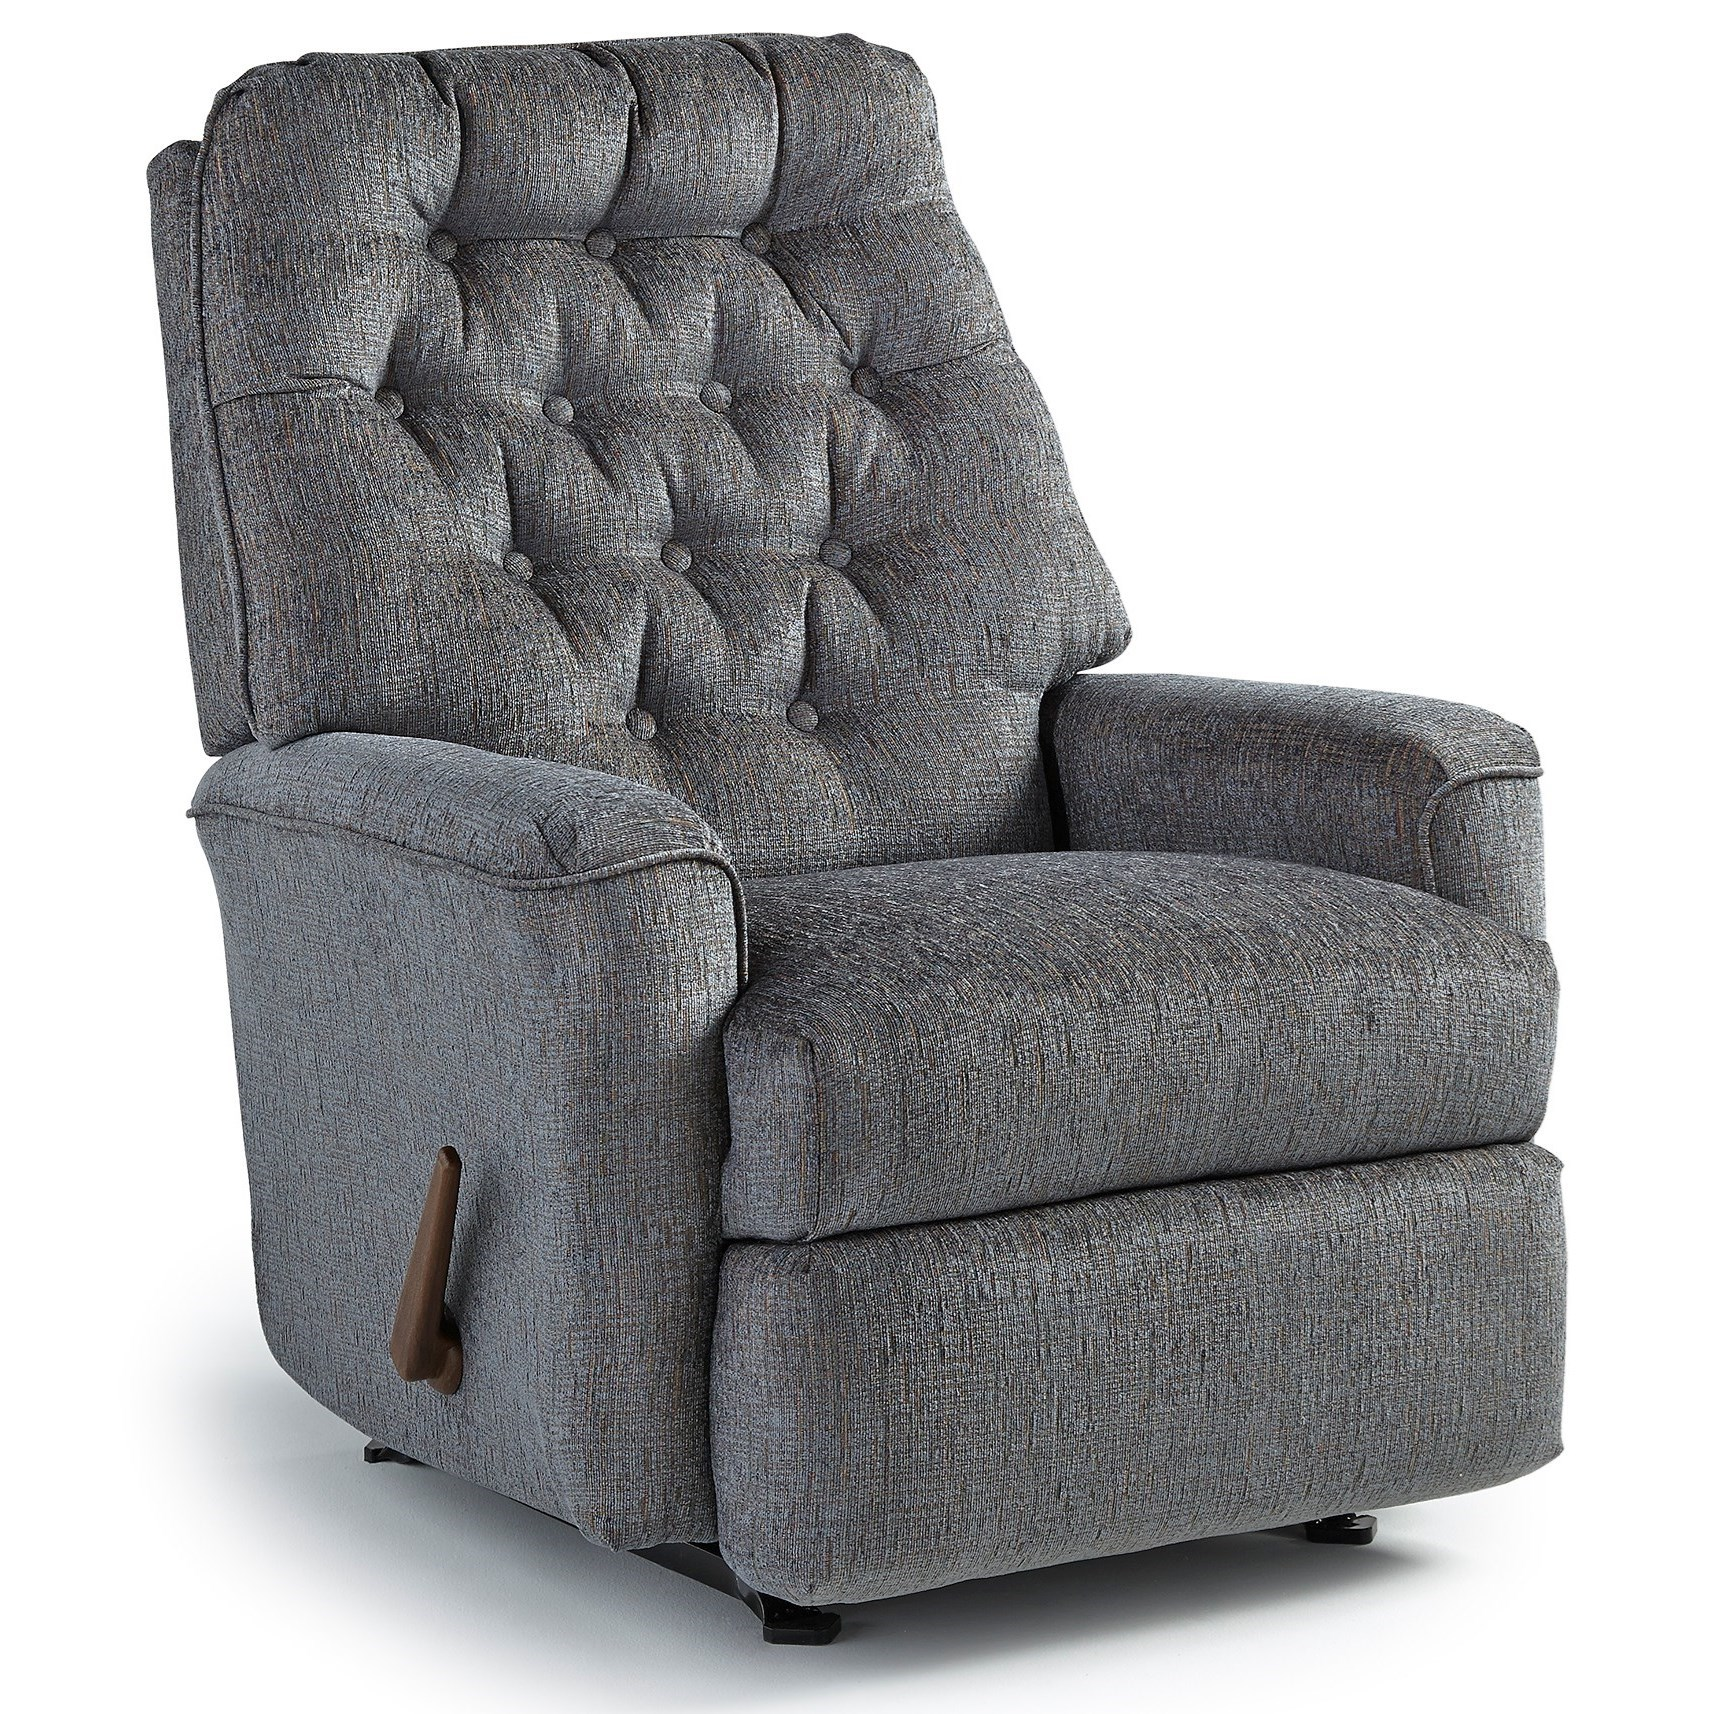 Medium Recliners Mexi Wallhugger Recliner by Best Home Furnishings at Saugerties Furniture Mart